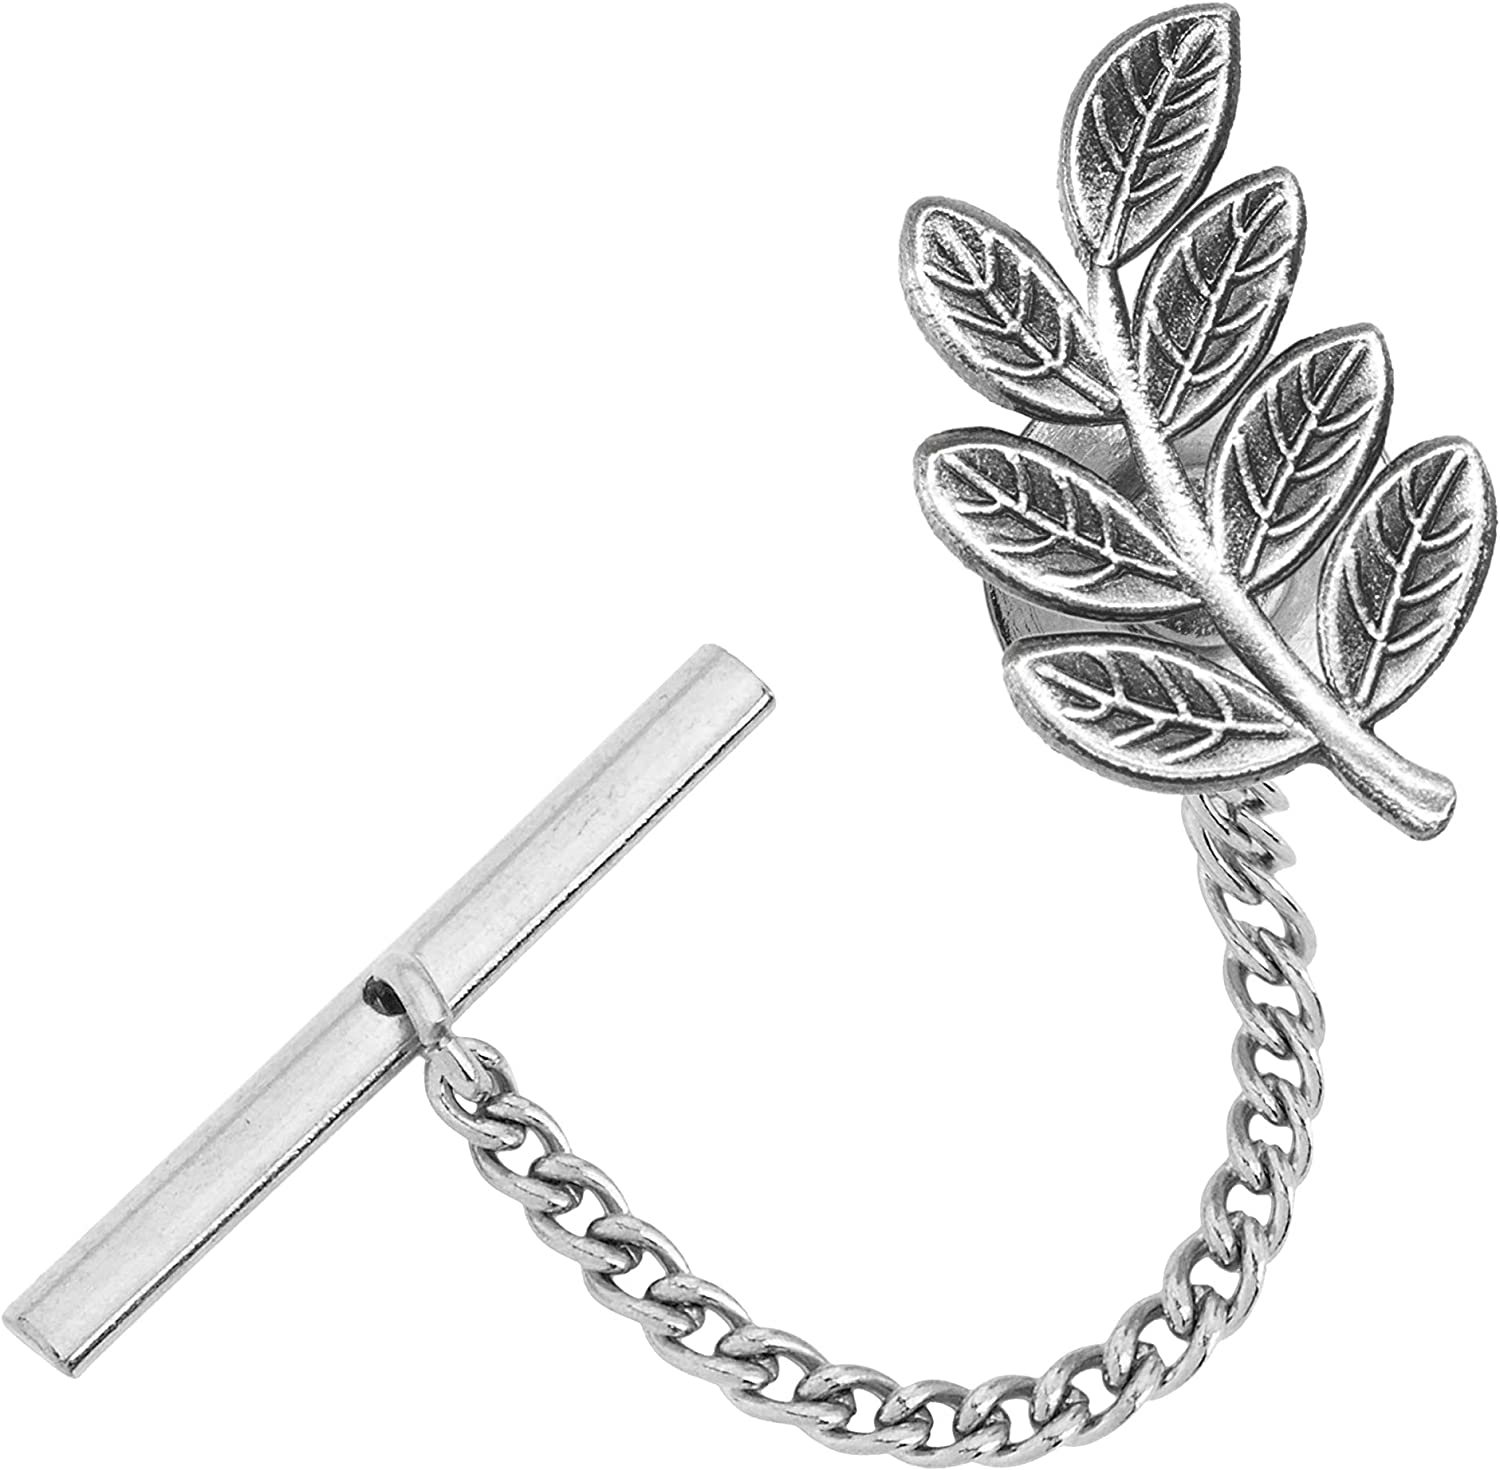 Masonic Revival Sprig of Acacia Tie Pin Tack (Antique Silver)